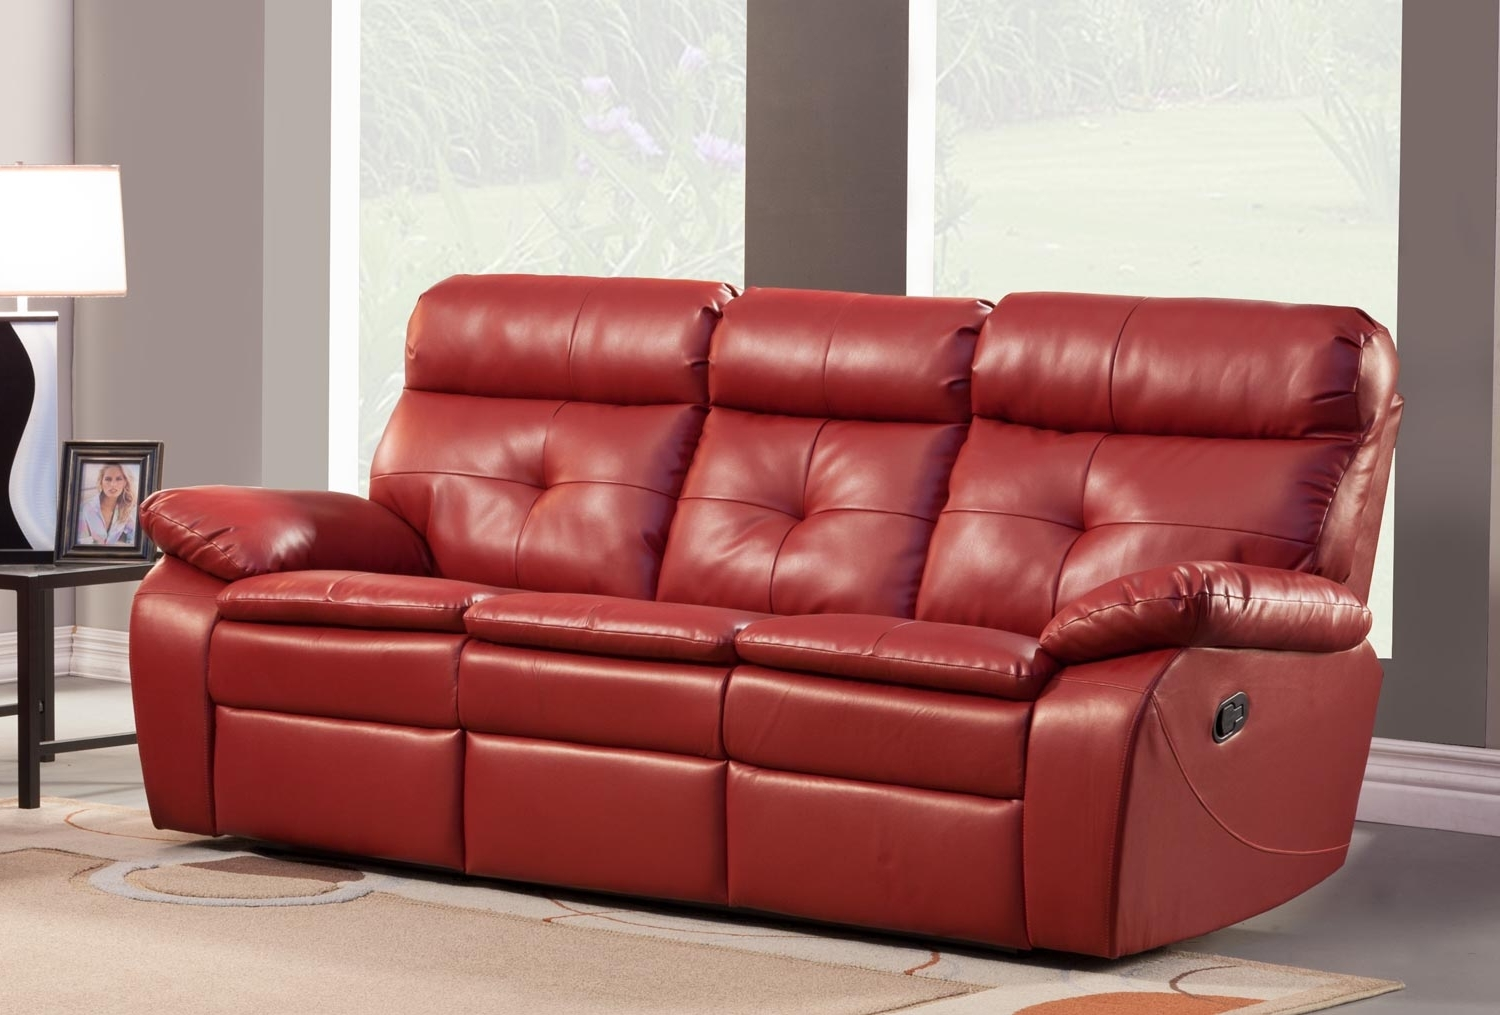 Famous Red Leather Recliner Sofa – Home And Textiles With Red Leather Reclining Sofas And Loveseats (View 6 of 15)